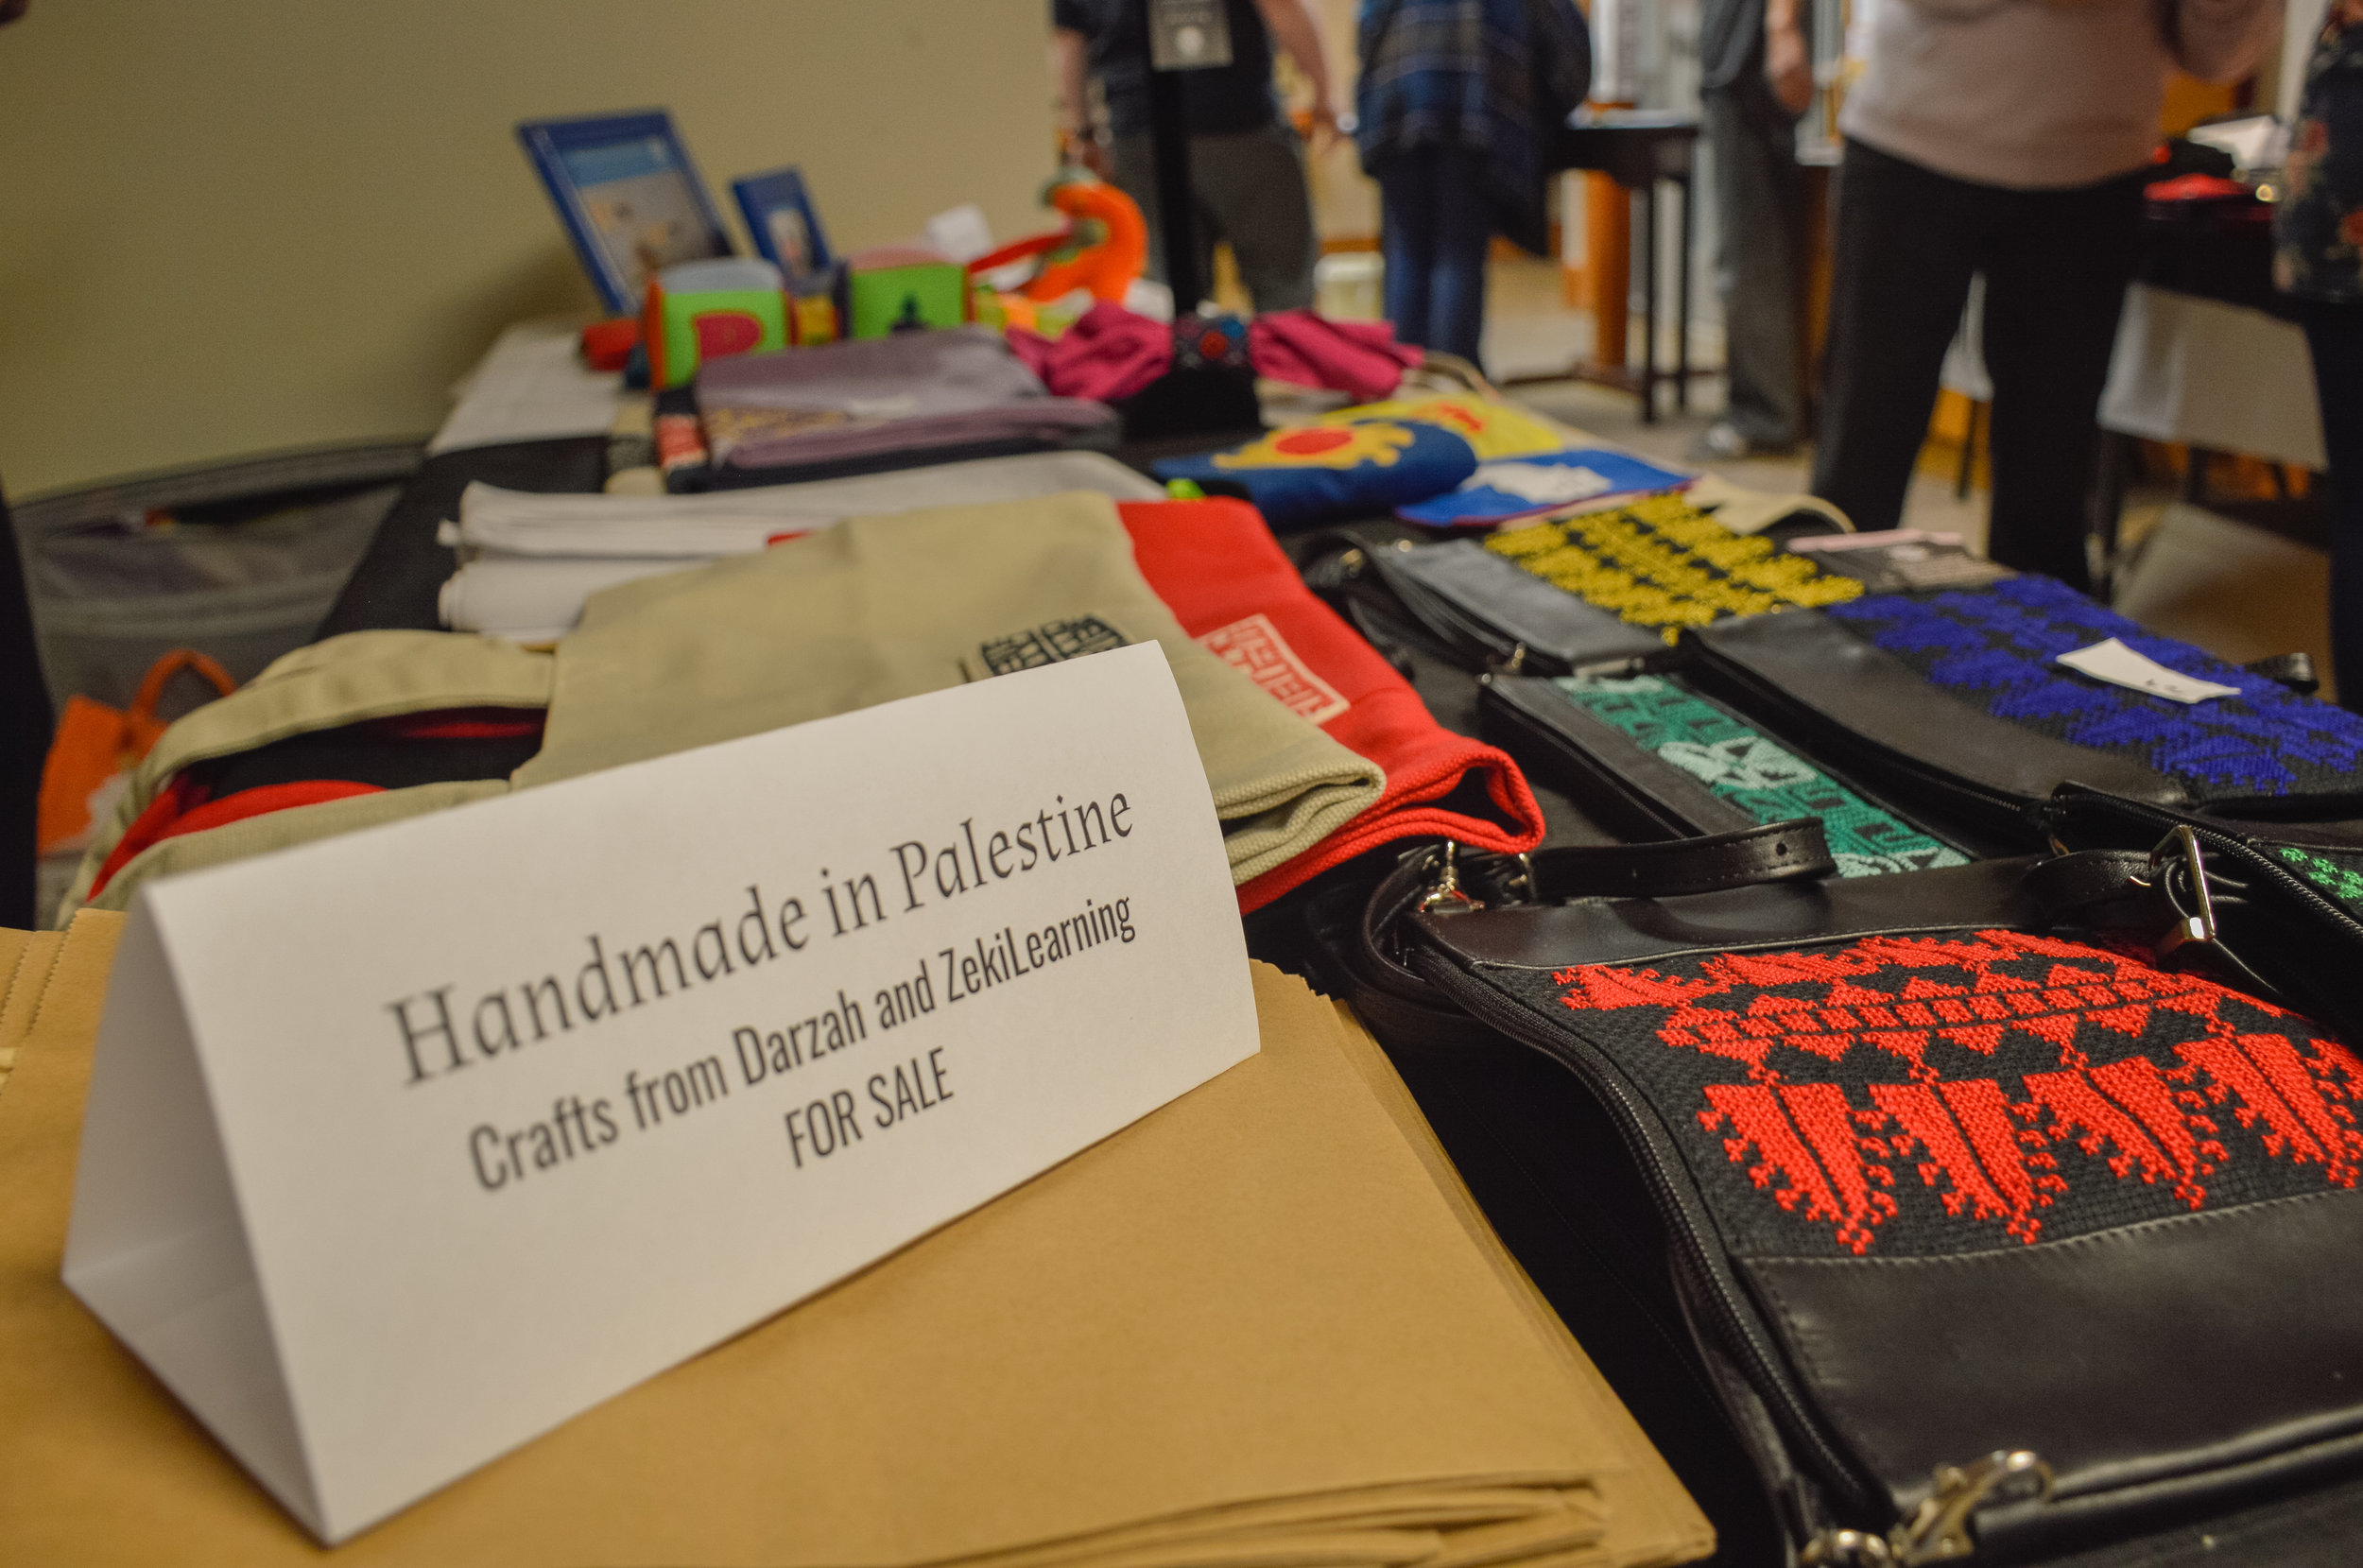 Handmade crafts and artifacts found at Broken Film Festival. Handmade in Palestine.